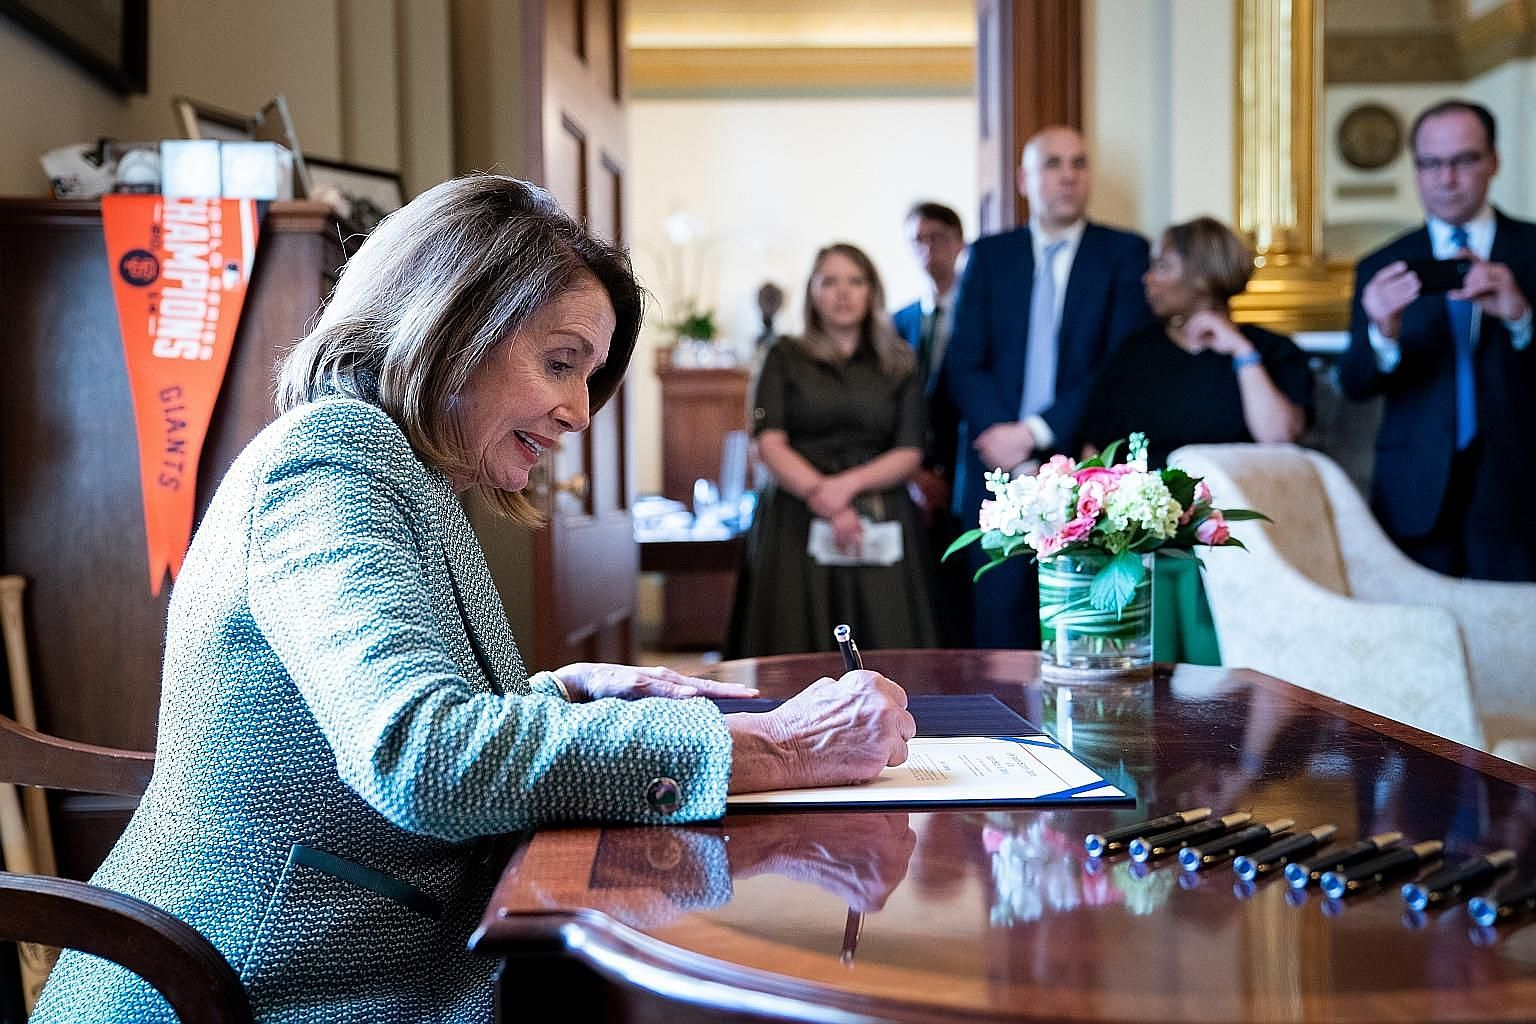 House Speaker Nancy Pelosi signing a disapproval resolution on March 14 on Capitol Hill in Washington blocking United States President Donald Trump's declaration of a national emergency.